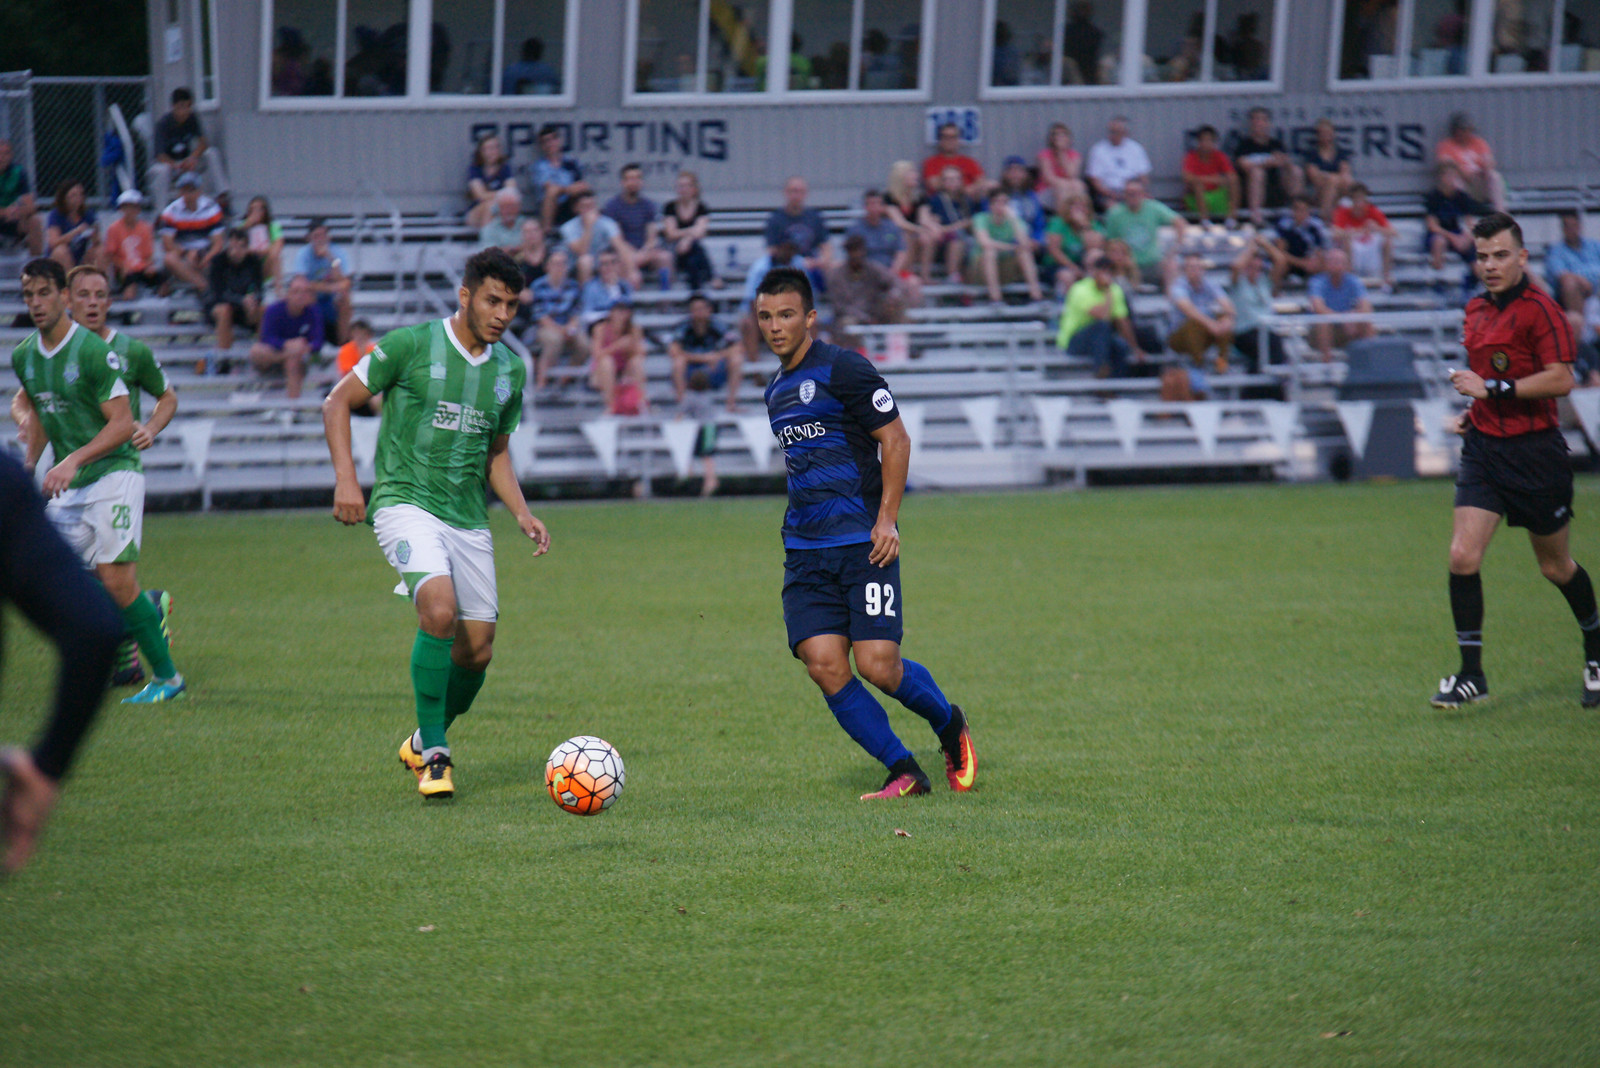 Alex Molano scored in the 95th minute to earn a draw